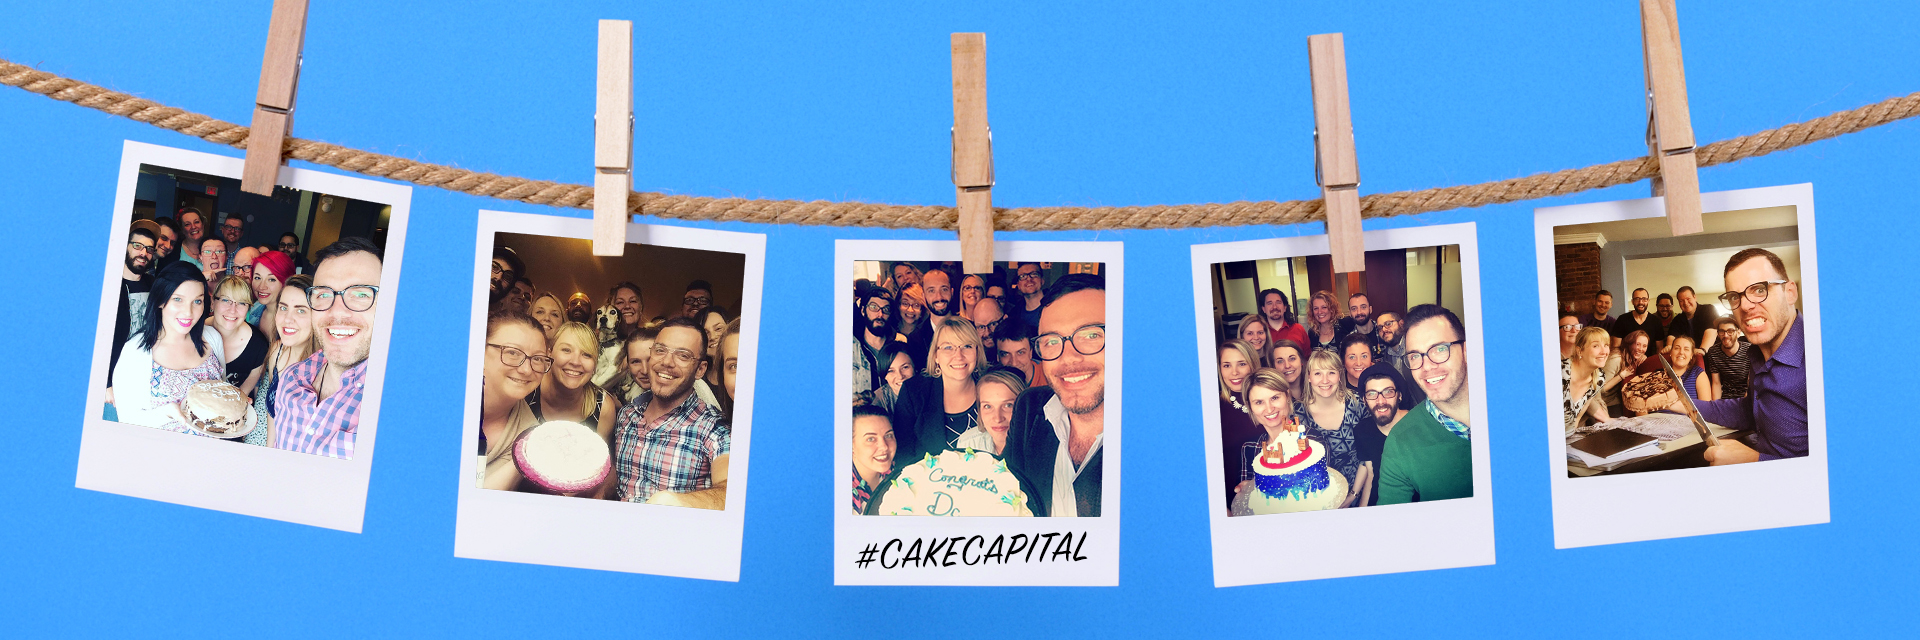 National Cake Day at #CakeCapital